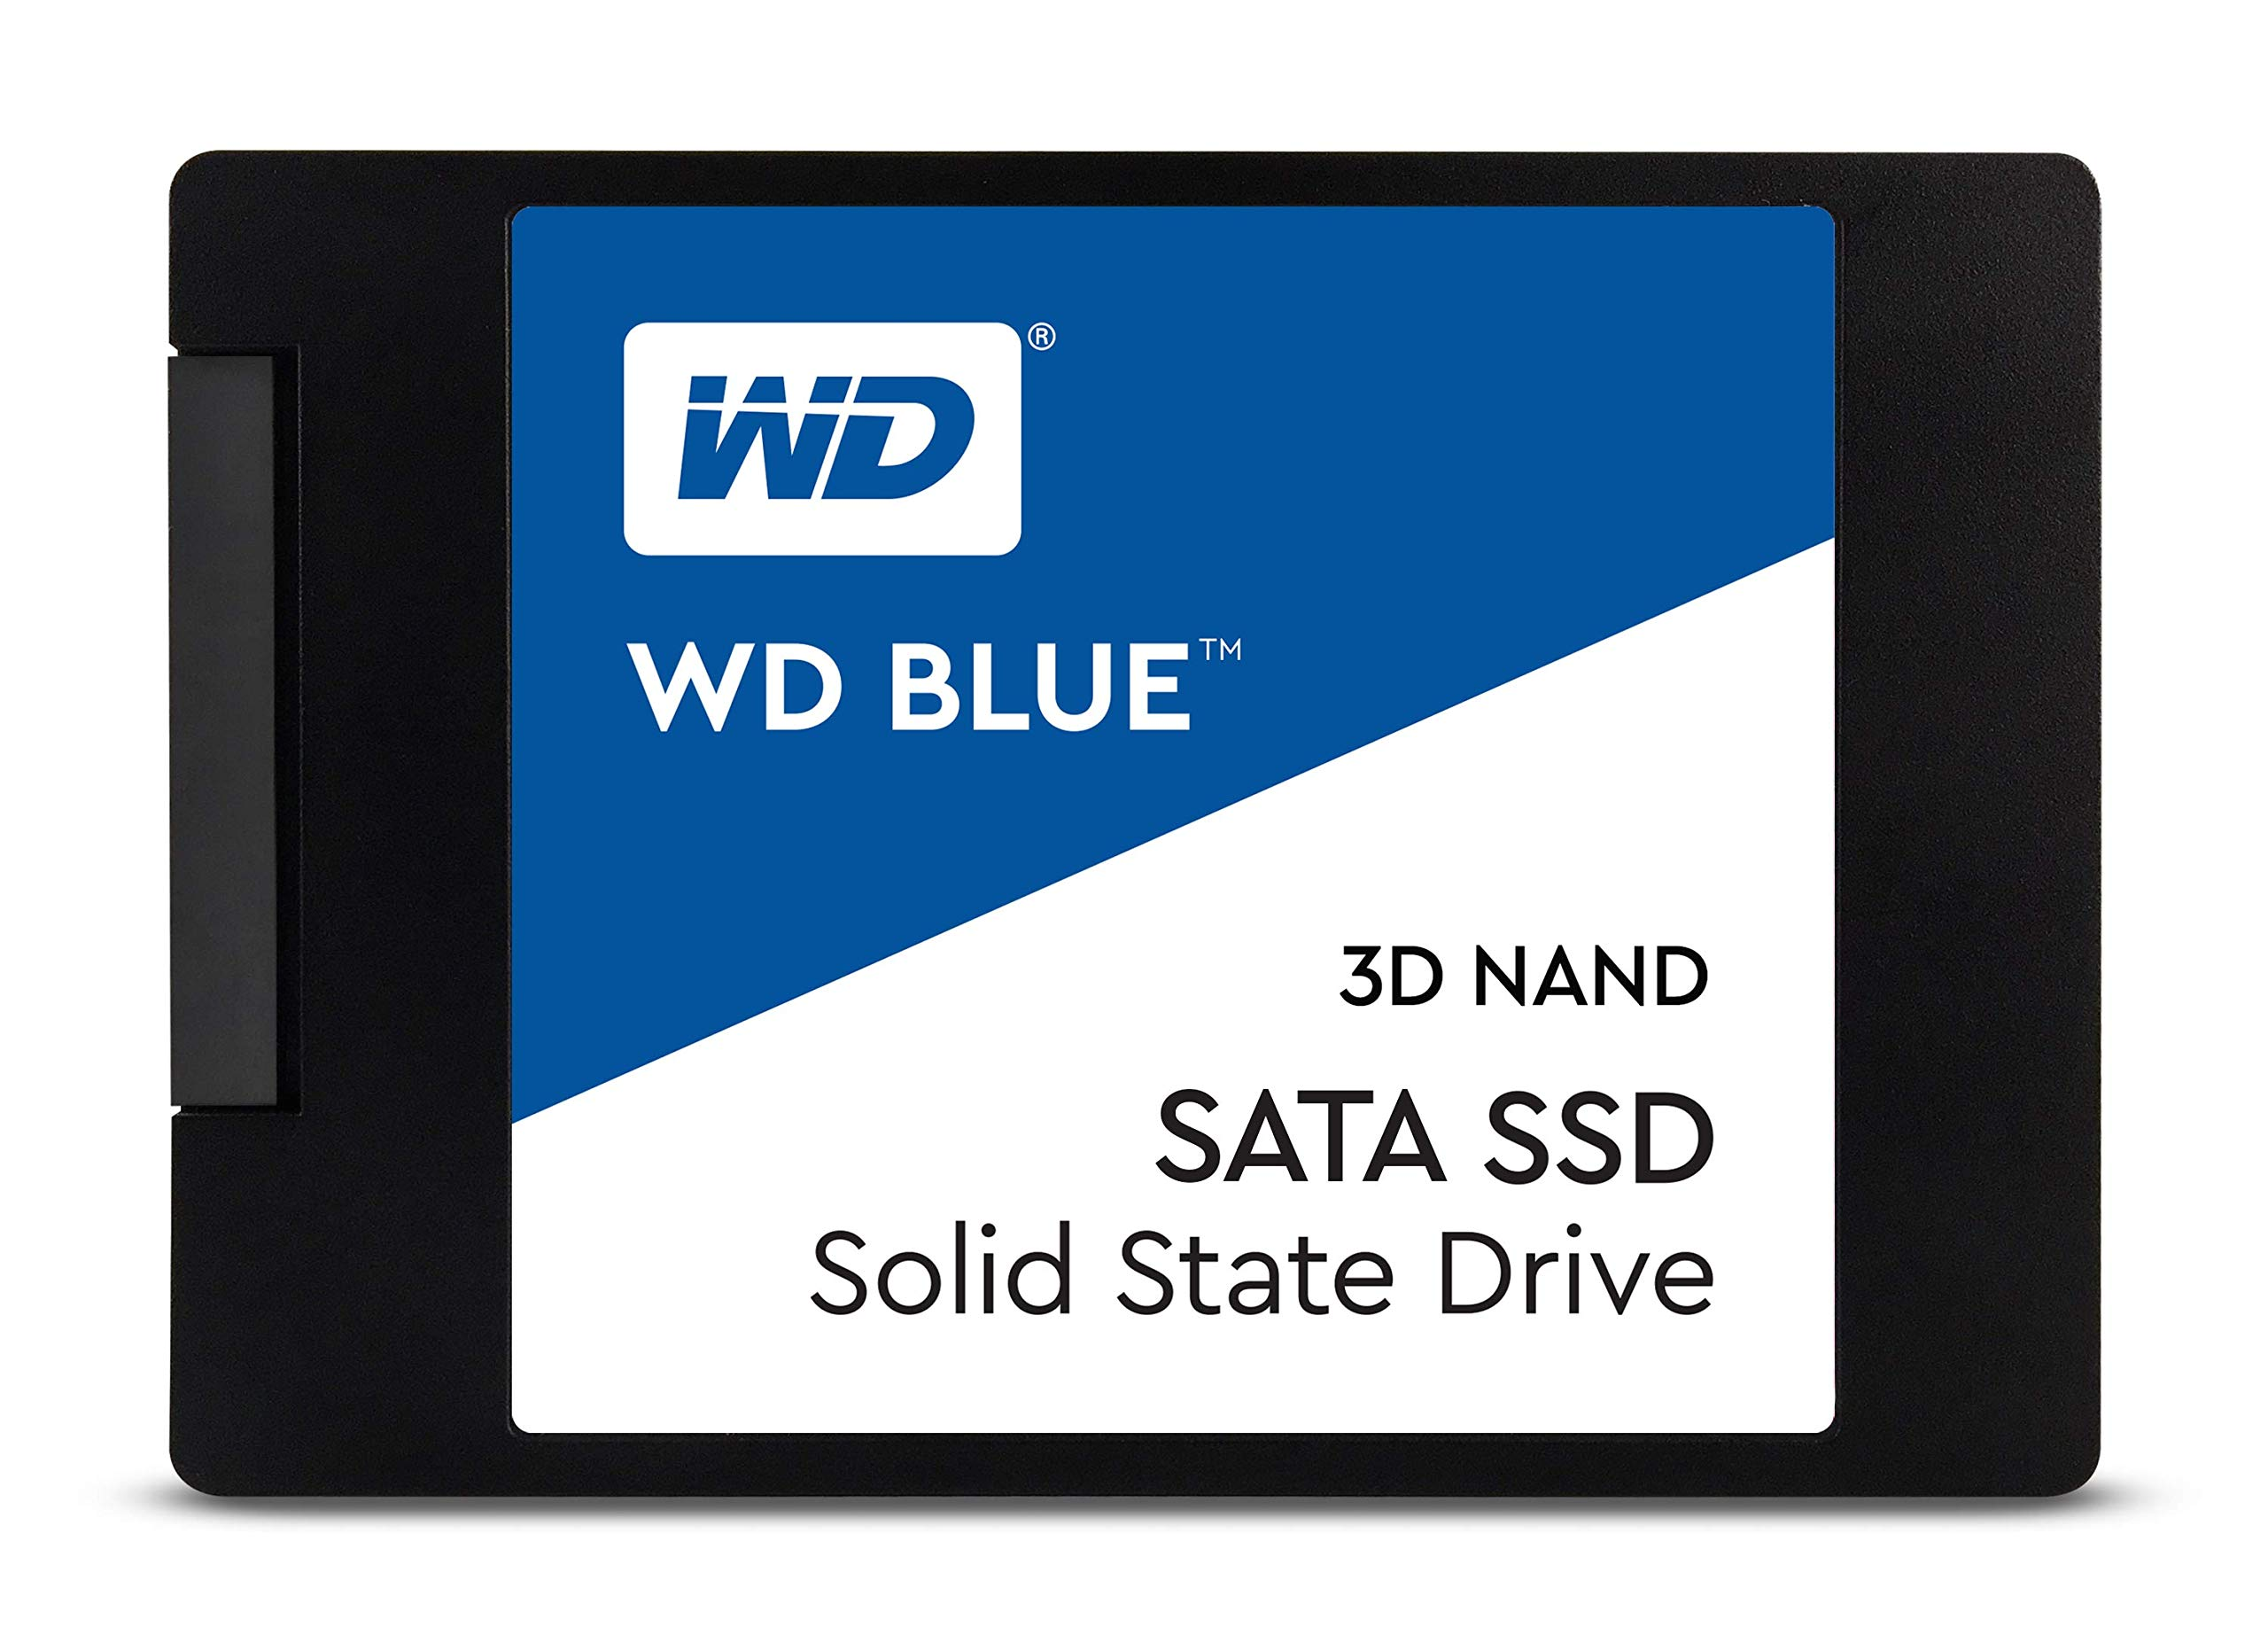 SSD 250GB SATA WD Blue 3D NAND 250GB PC 6 Gb/s 2.5/7mm Up to